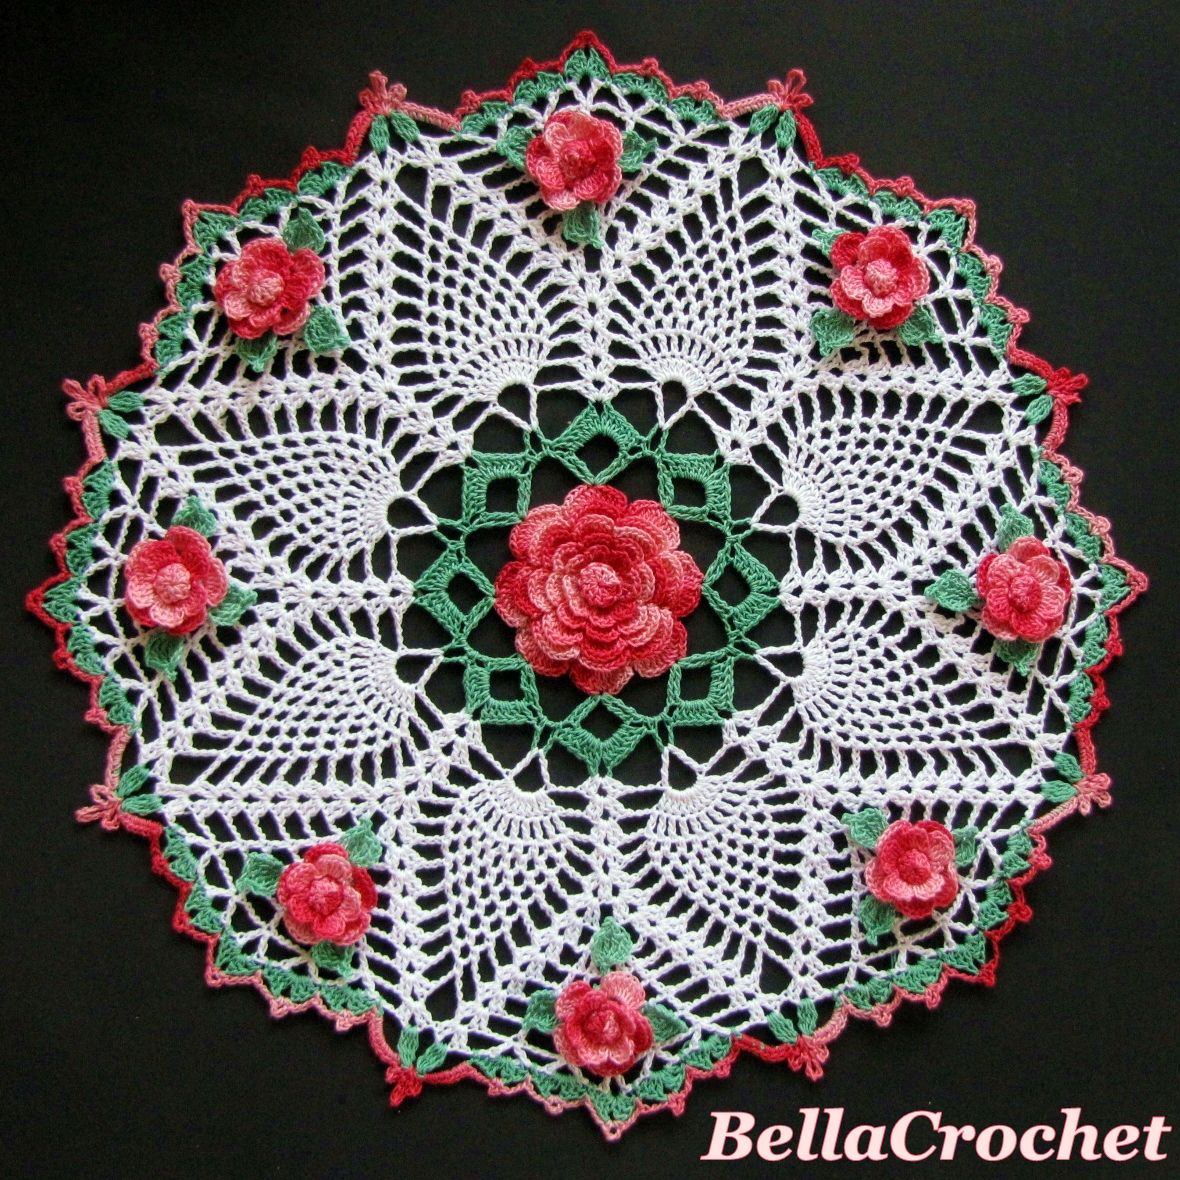 Bellacrochet dorothys roses doily a free crochet pattern for bellacrochet dorothys roses doily a free crochet pattern for you bankloansurffo Image collections